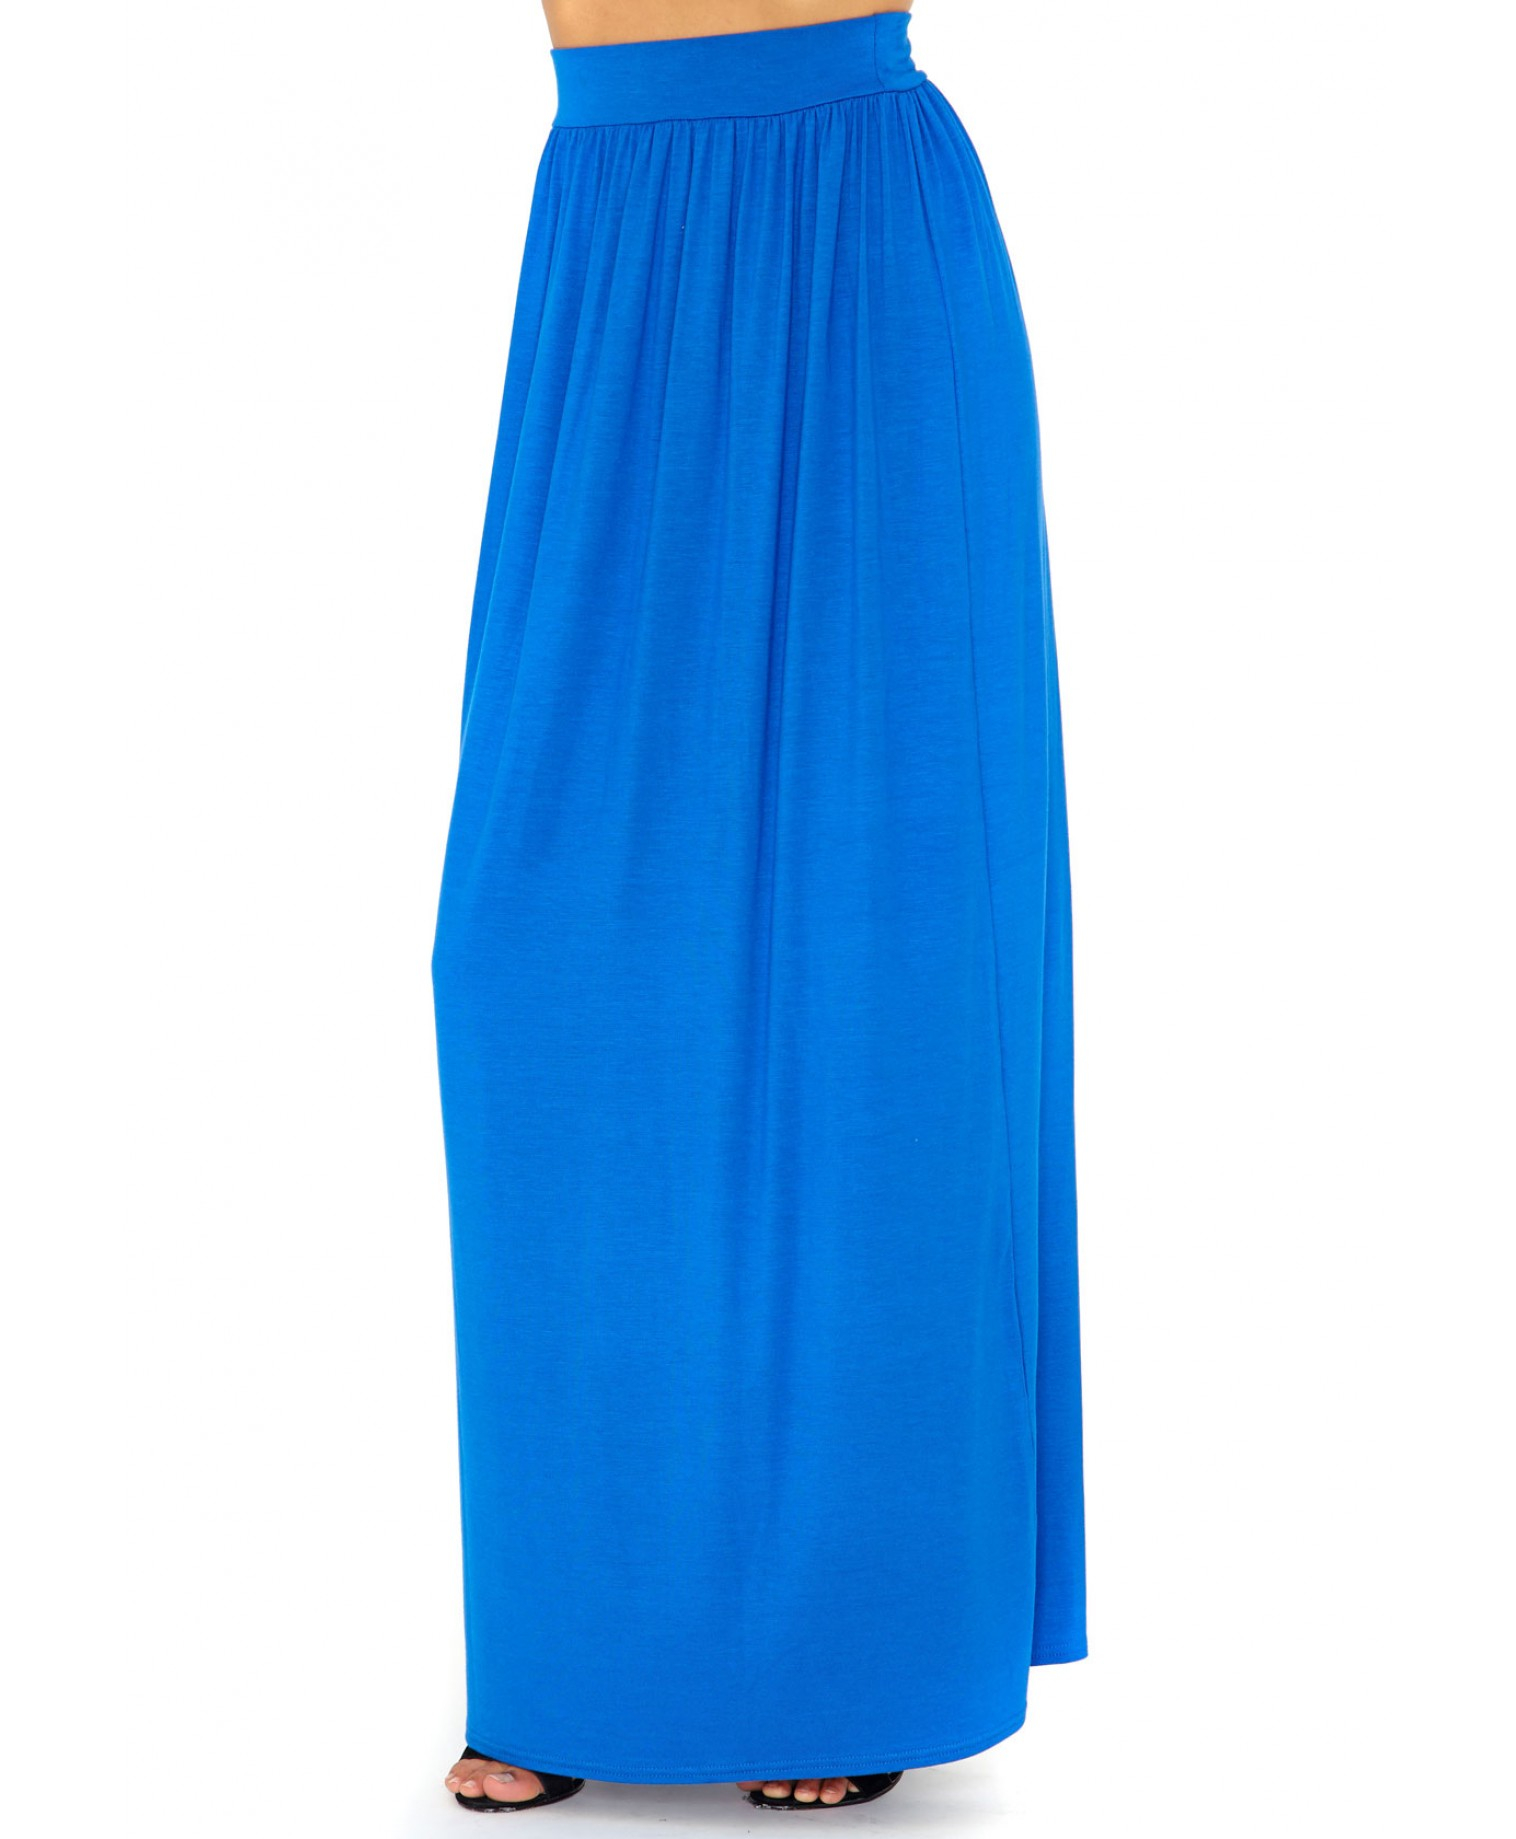 missguided kalkie maxi skirt in royal blue in blue